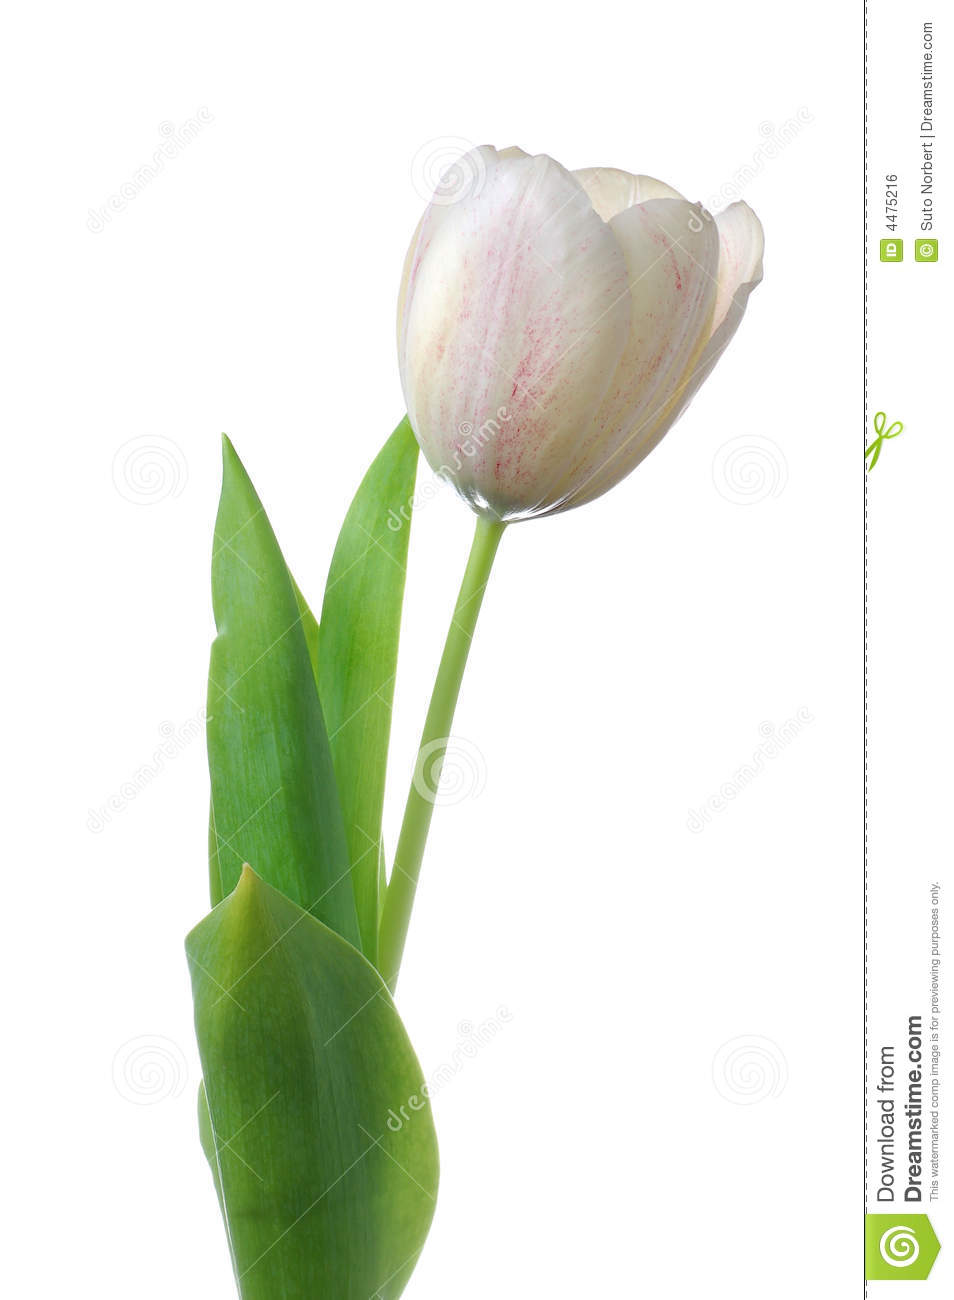 White tulip flower royalty free stock image image 4475216 background flower isolated tulip white dhlflorist Image collections